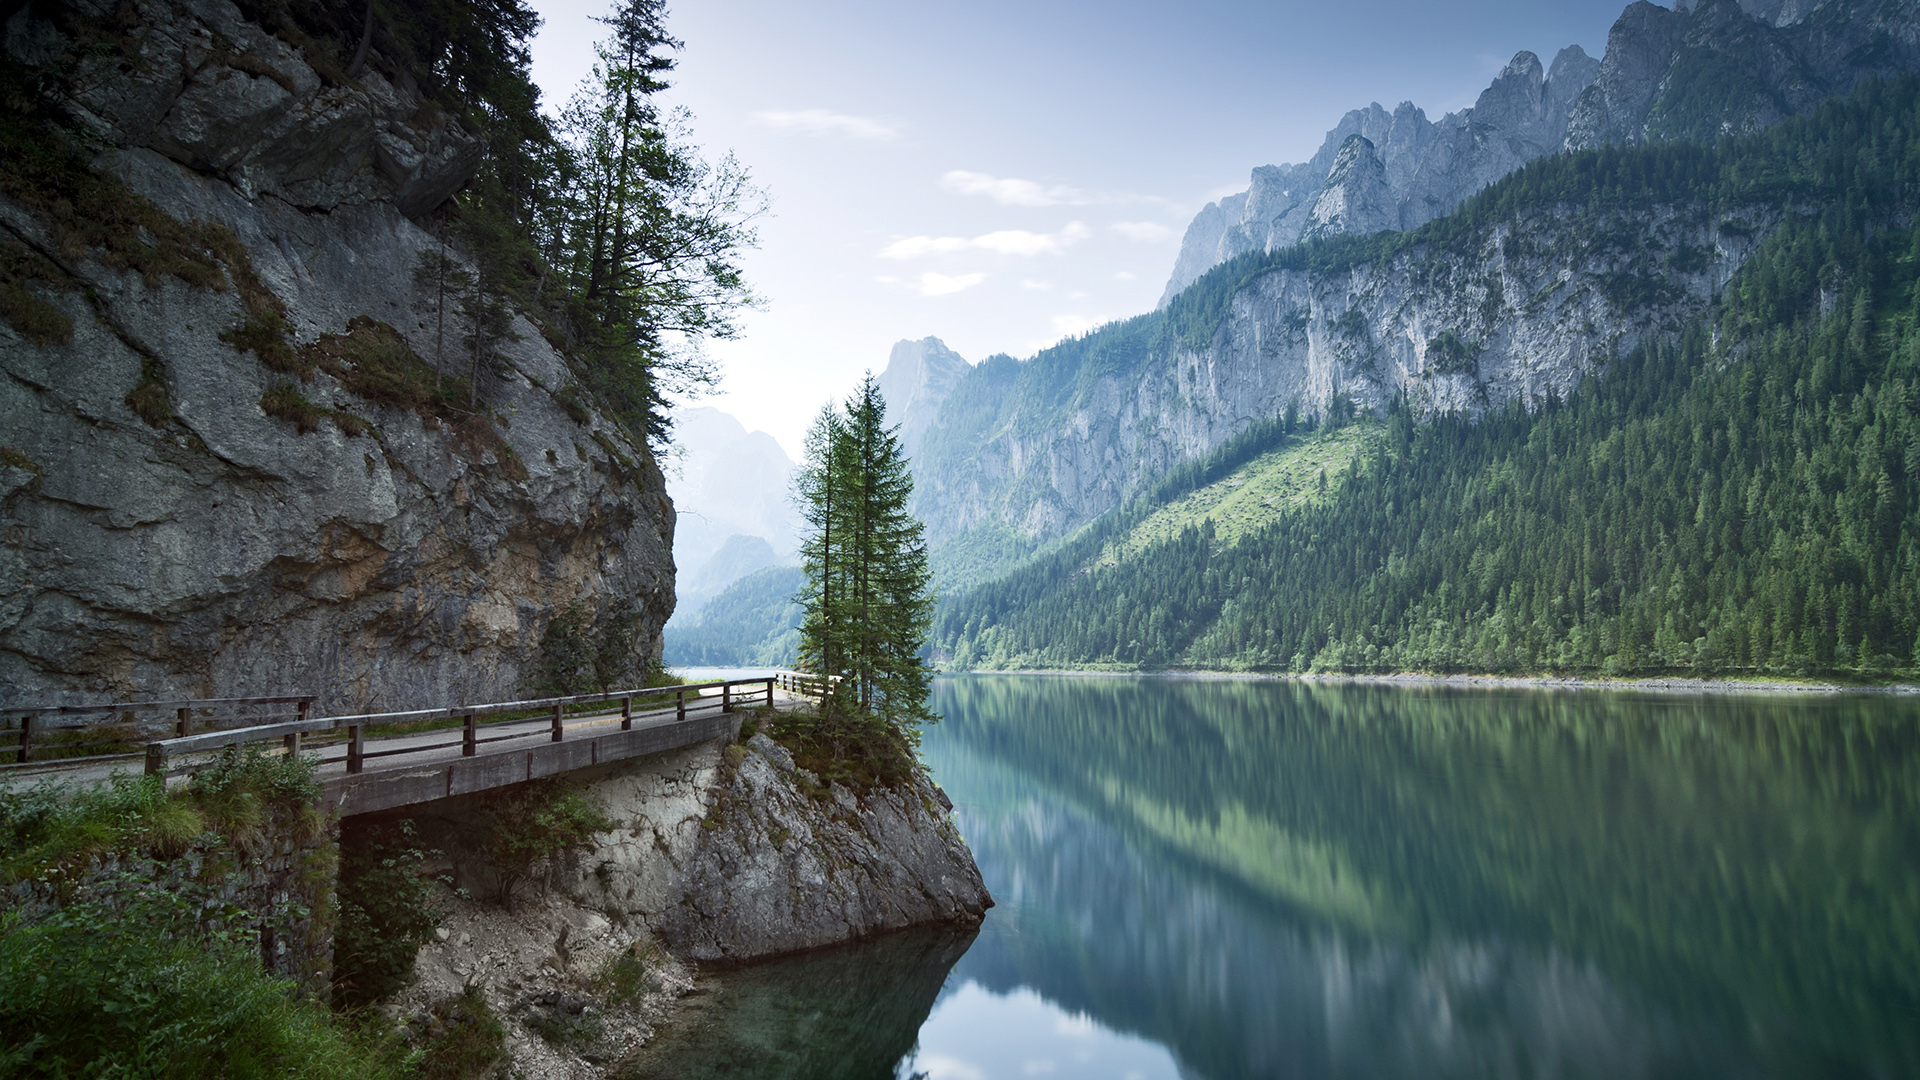 General 1920x1080 nature landscape trees forest plants road river mountains sky clouds bridge reflection rocks Dachstein Mountains Austria